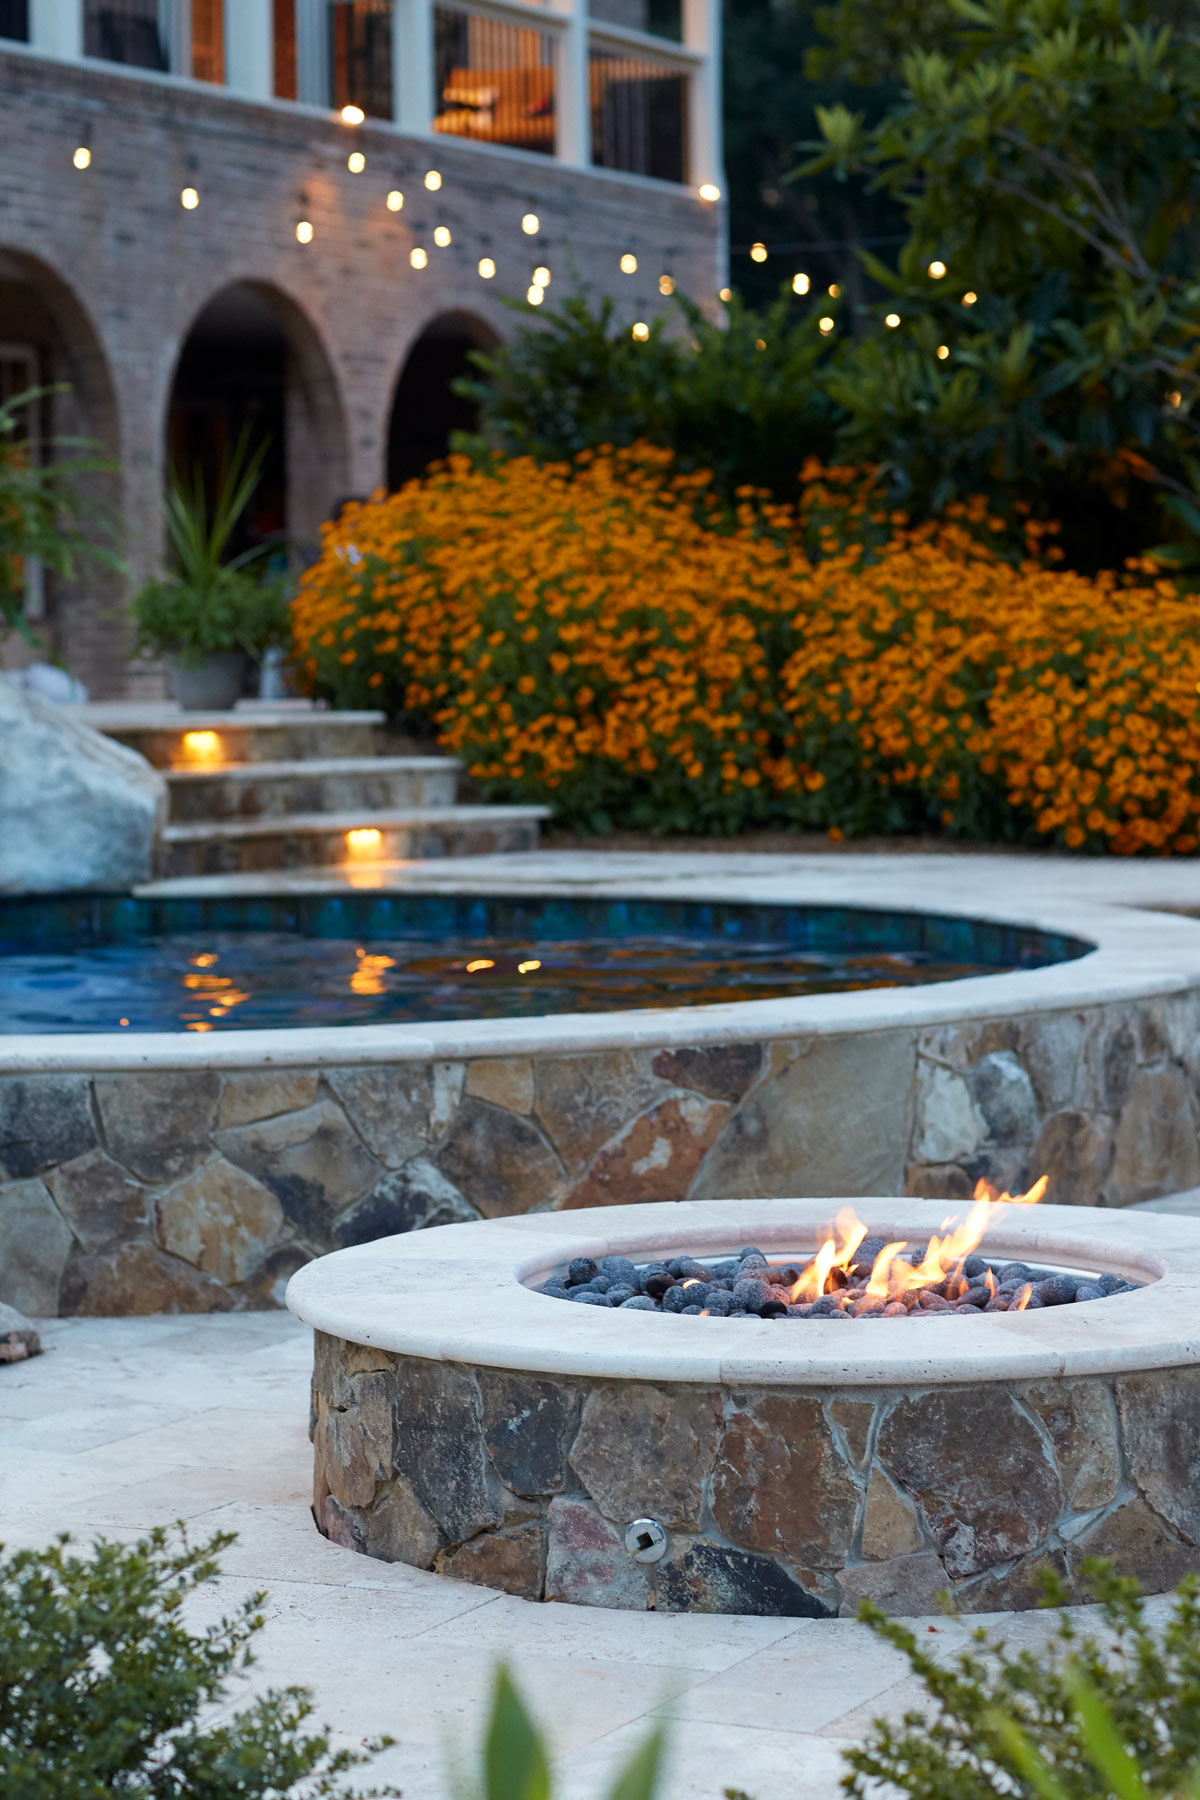 Editorial lifestyle photo of a modern outdoor deck and patio area with a stone fireplace and pool